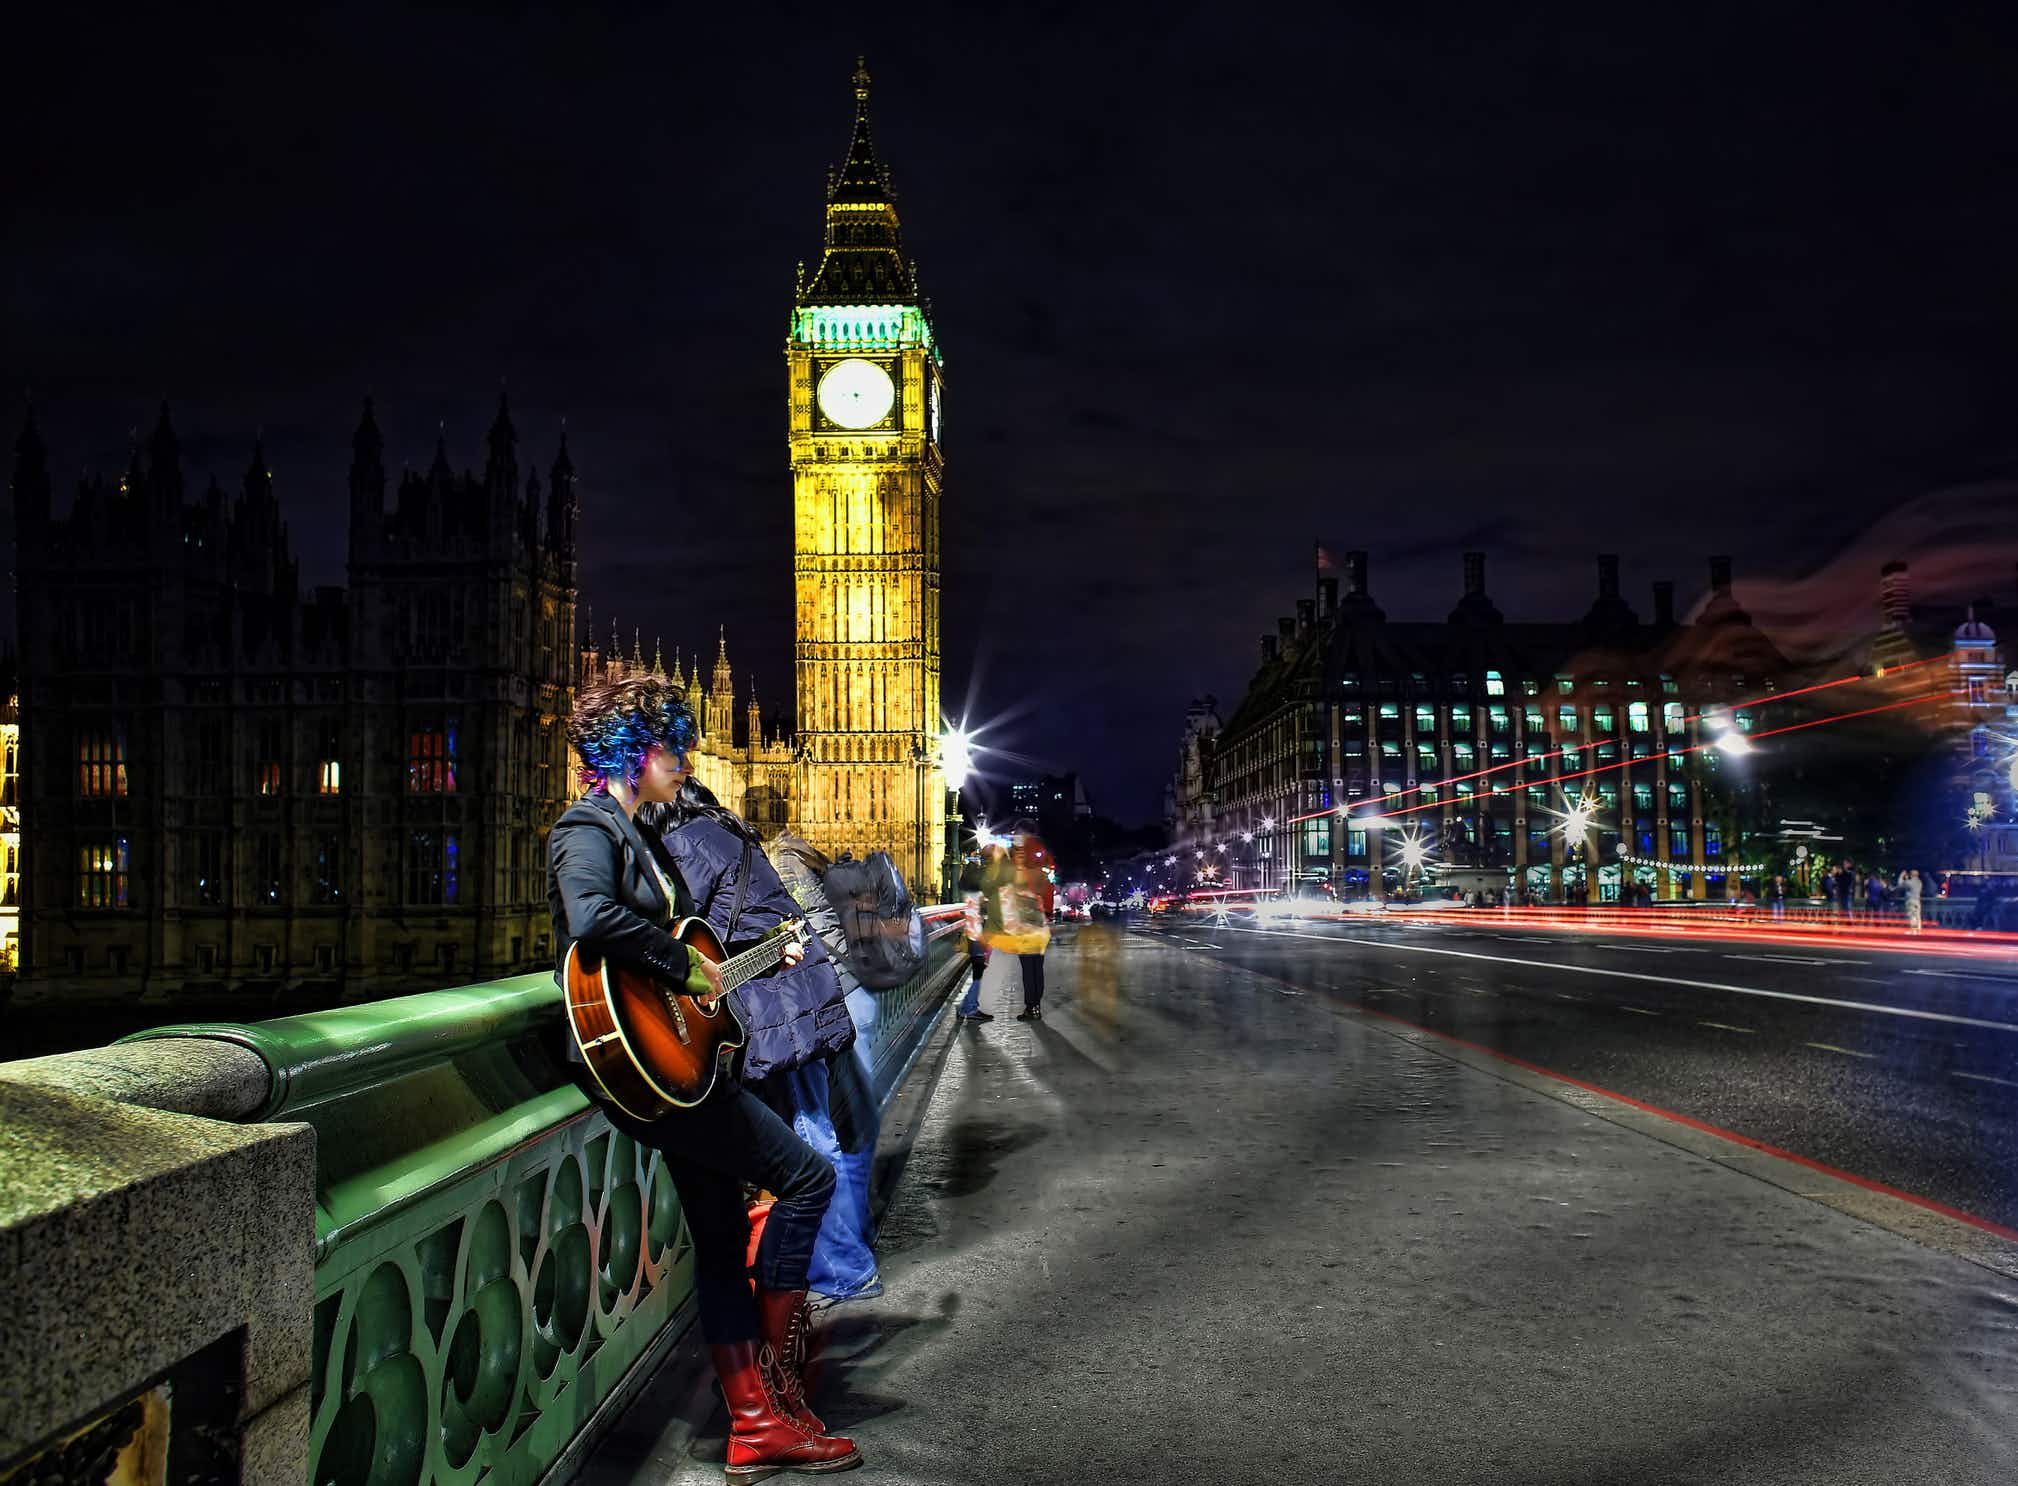 Travellers in London can soon pay buskers with contactless cards